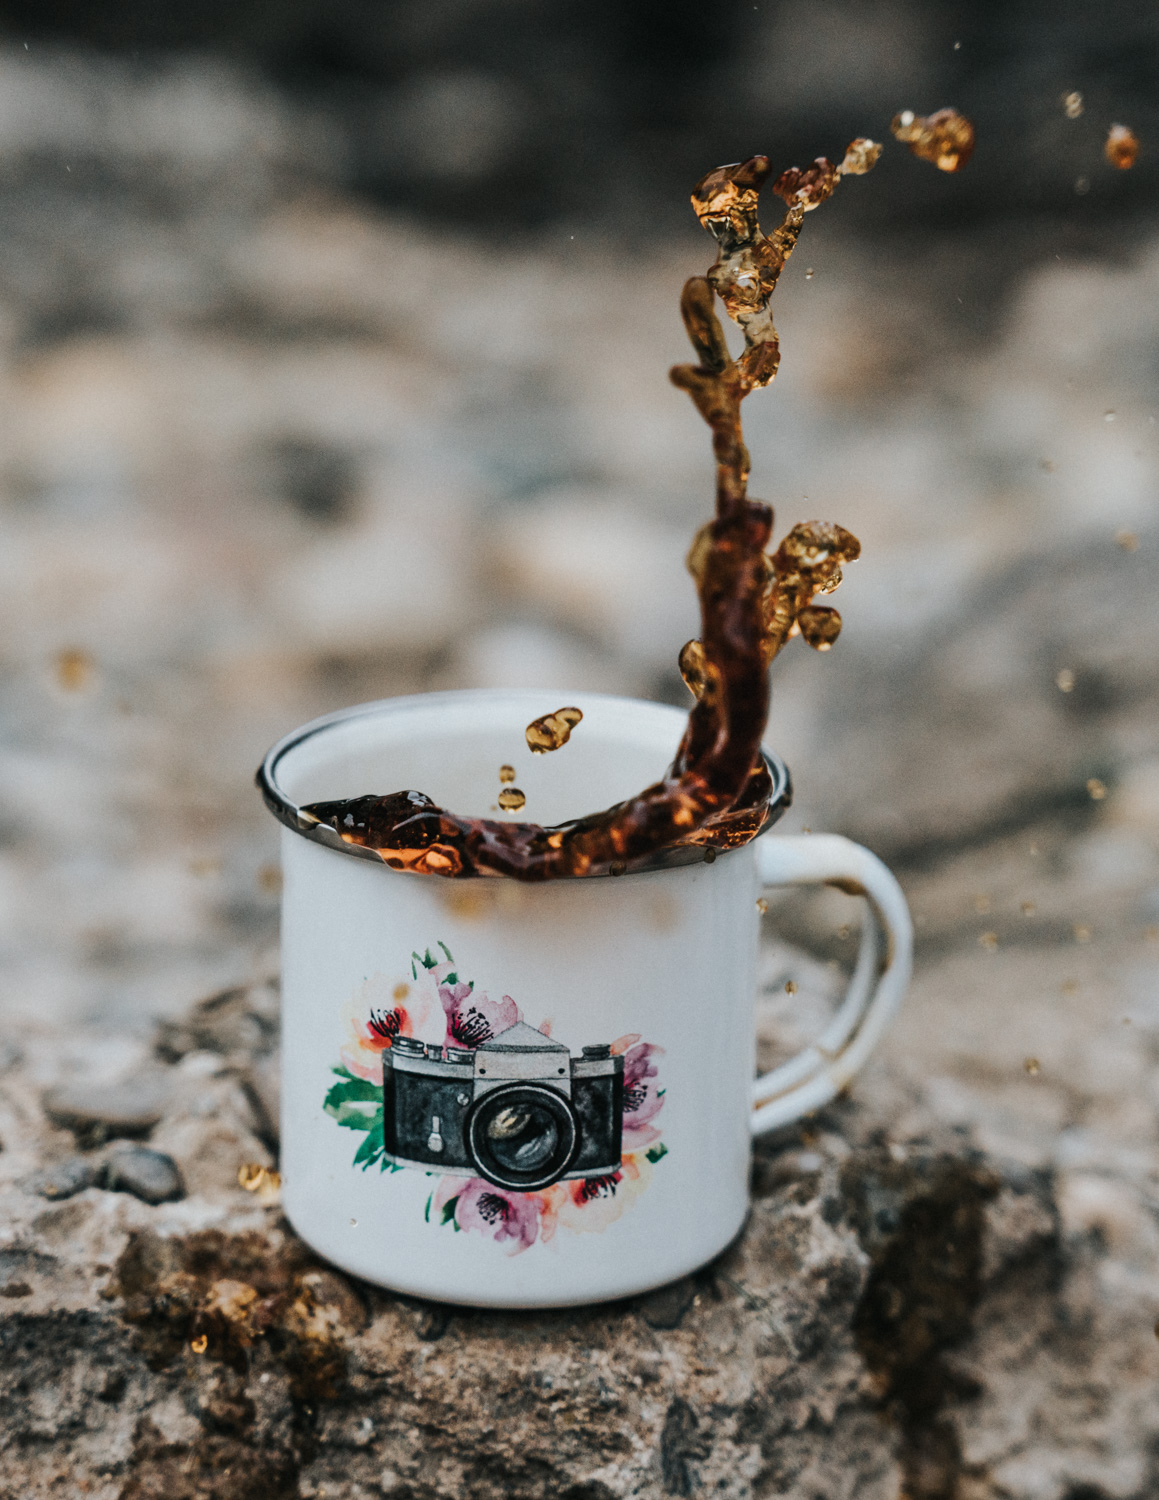 Where To Buy Nice Coffee Mugs Editing Day Photography Coffee Mug